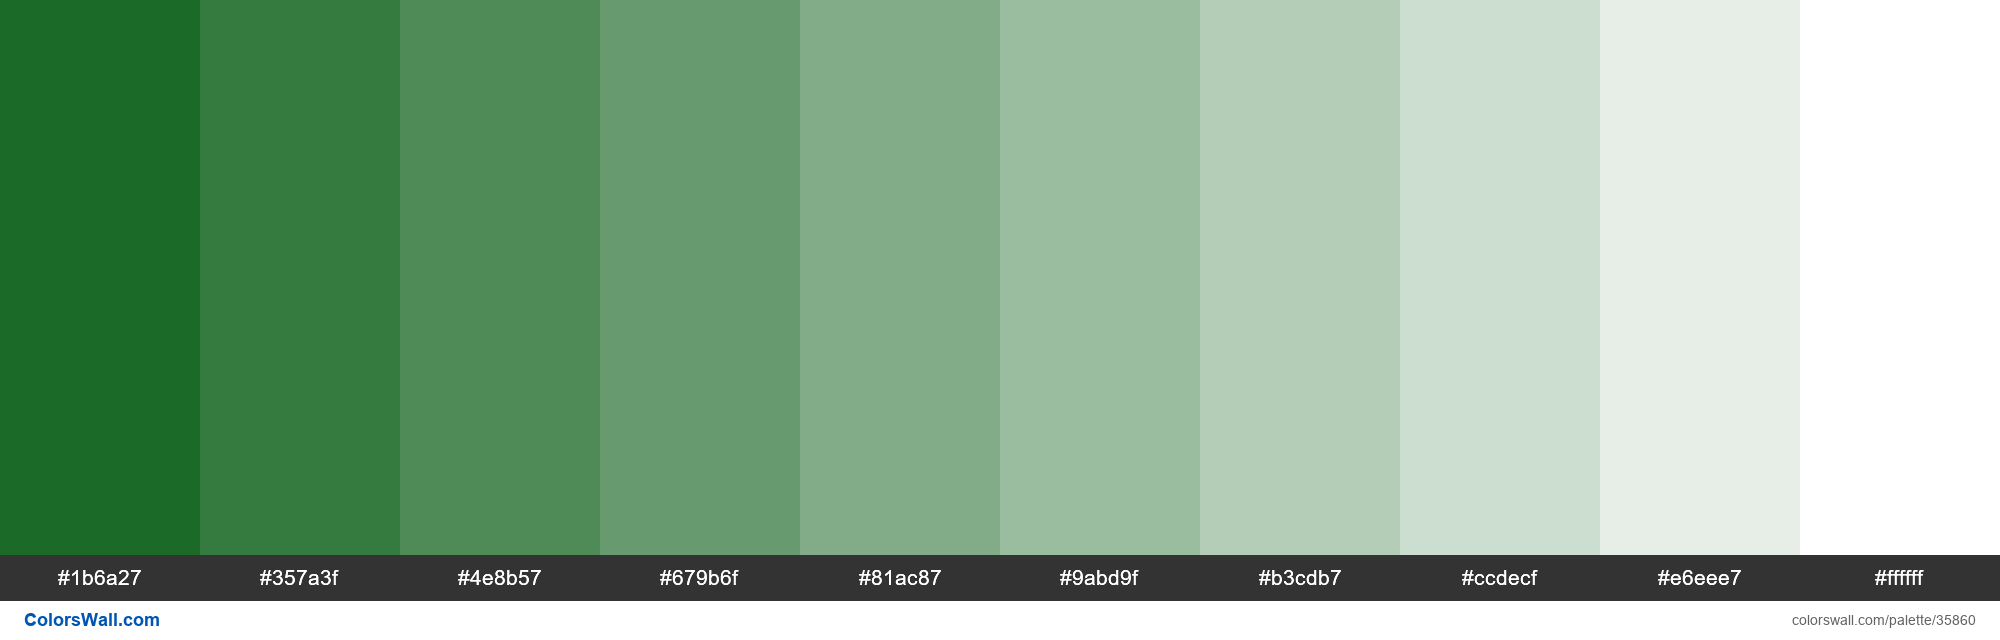 Tints XKCD Color deep green #02590f hex - #35860